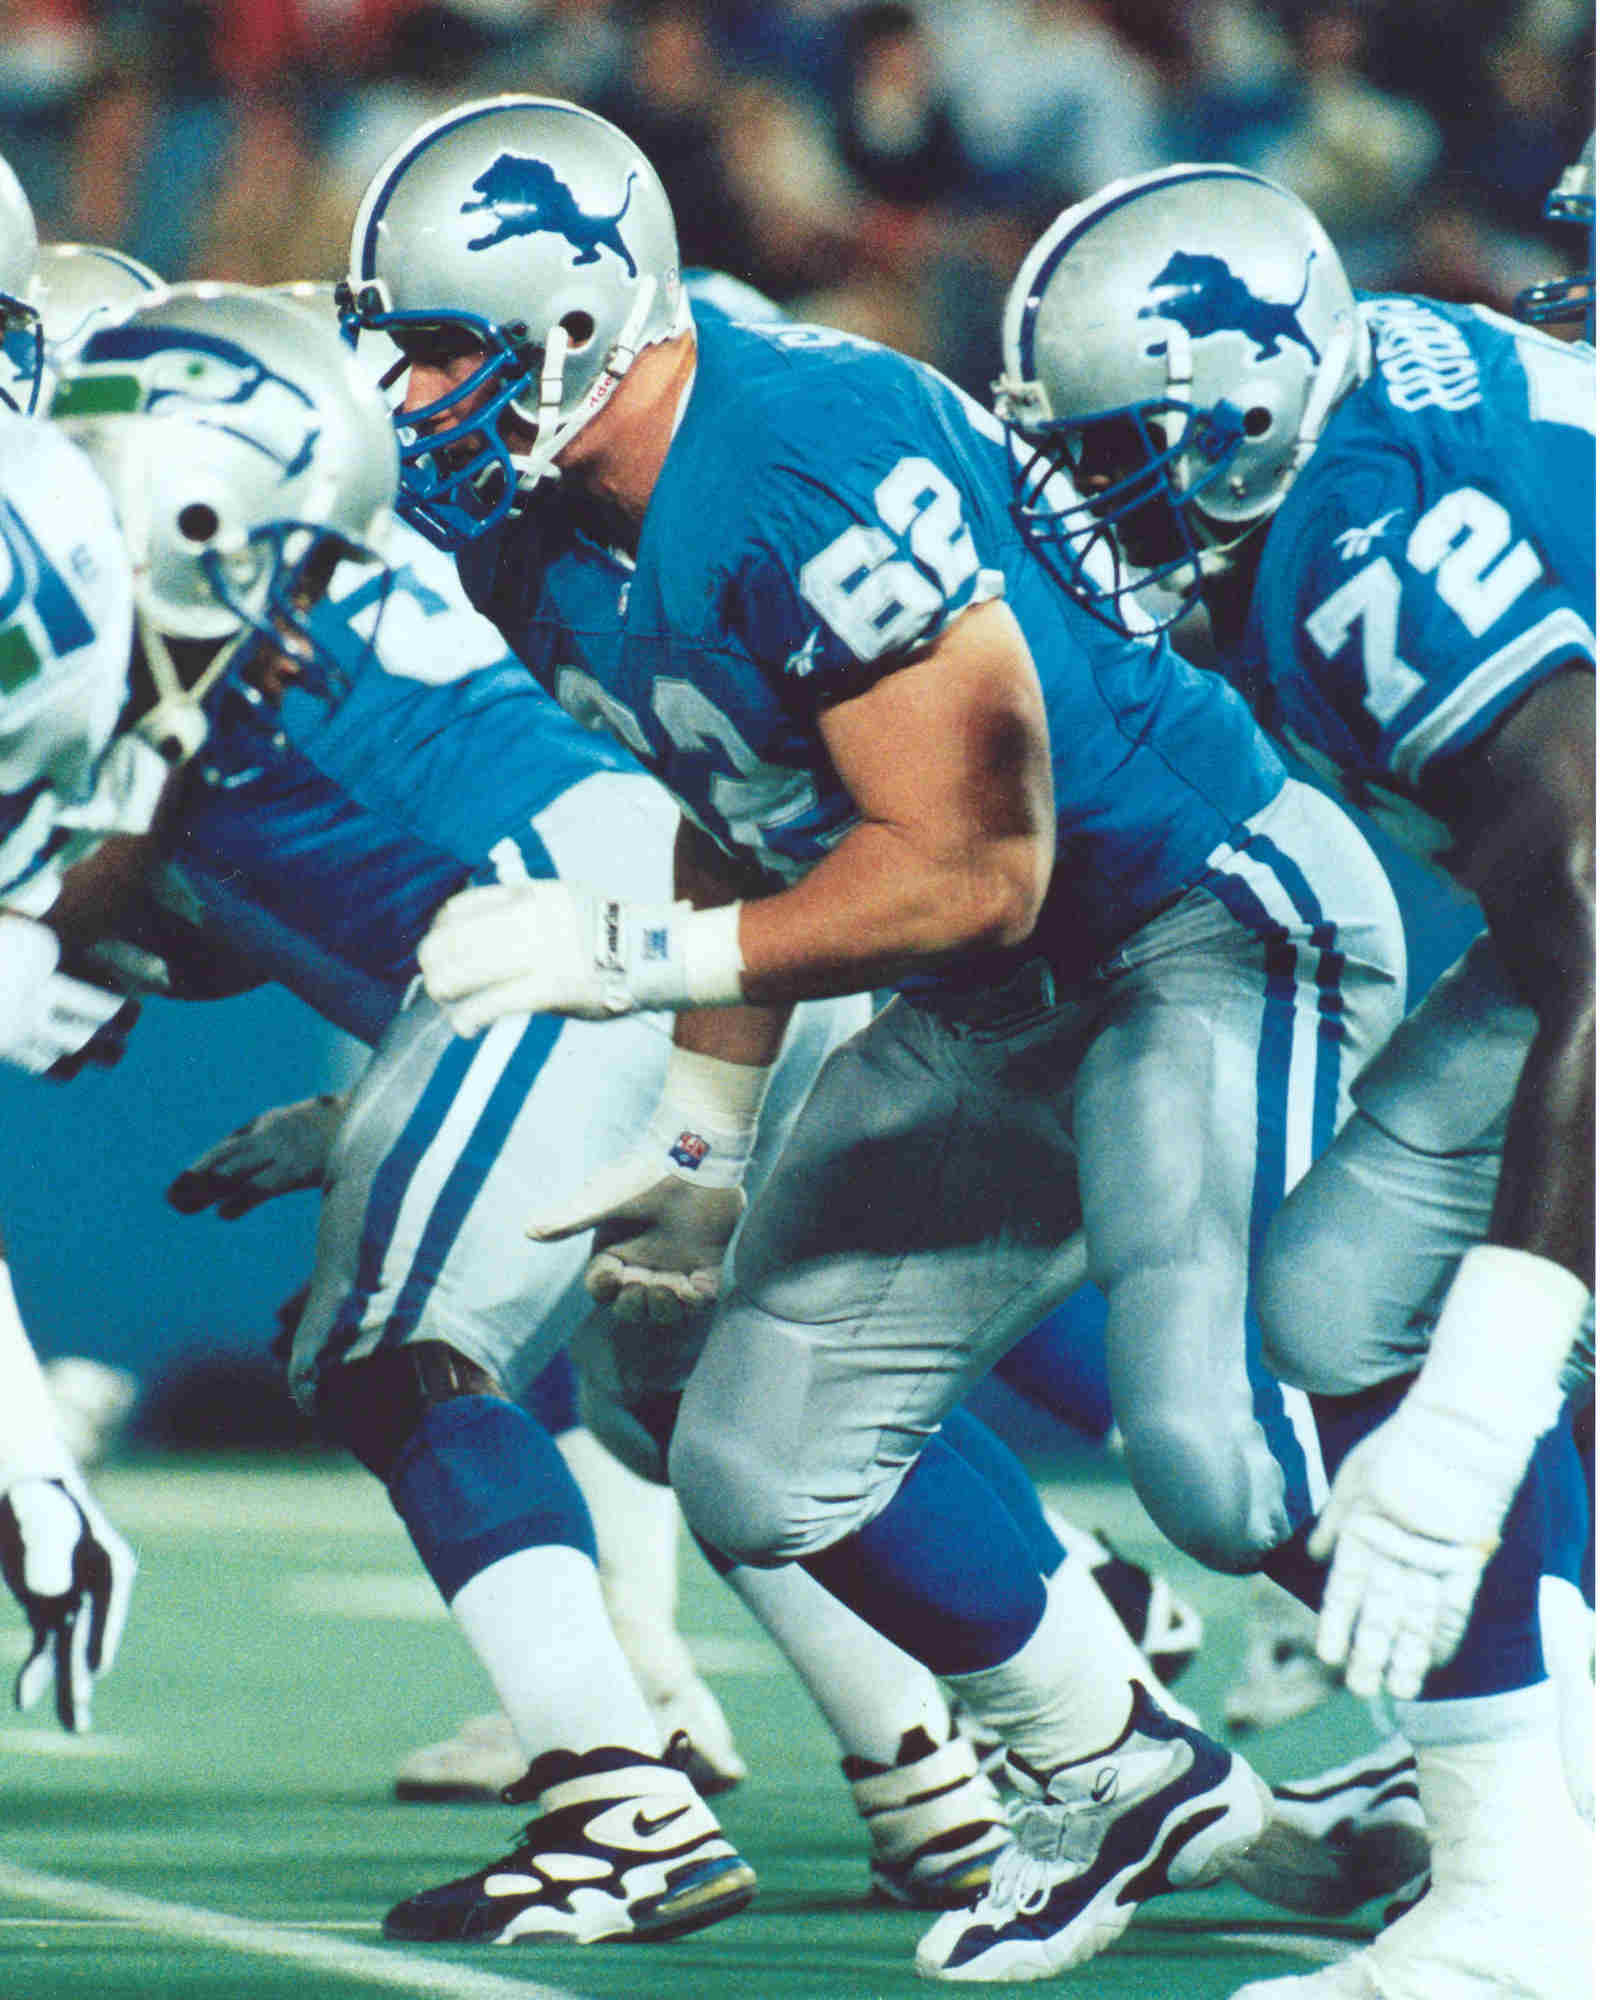 Tomy Semple, Detroit Lions Football